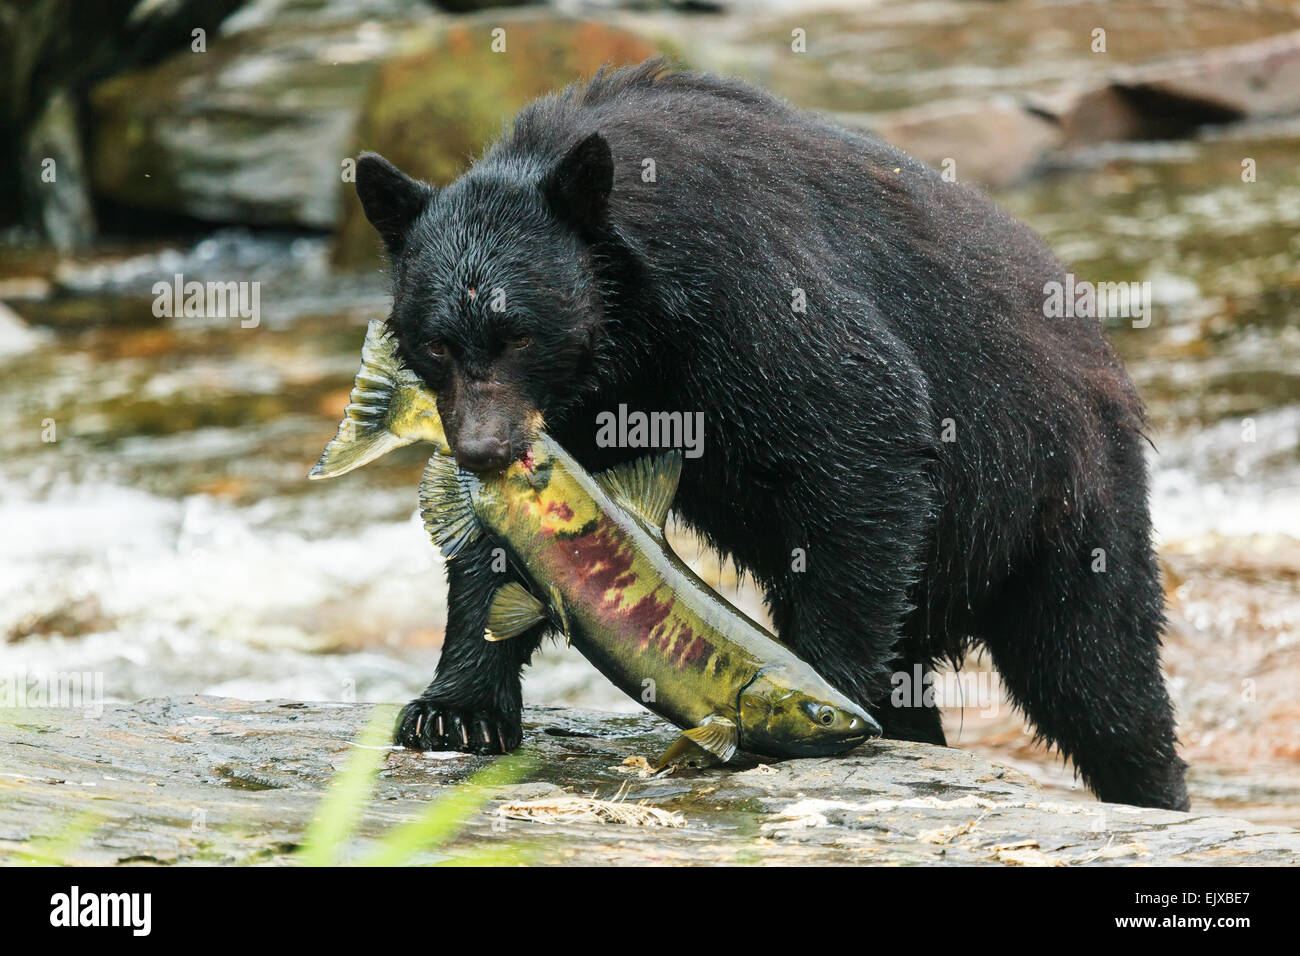 Black bear. - Stock Image